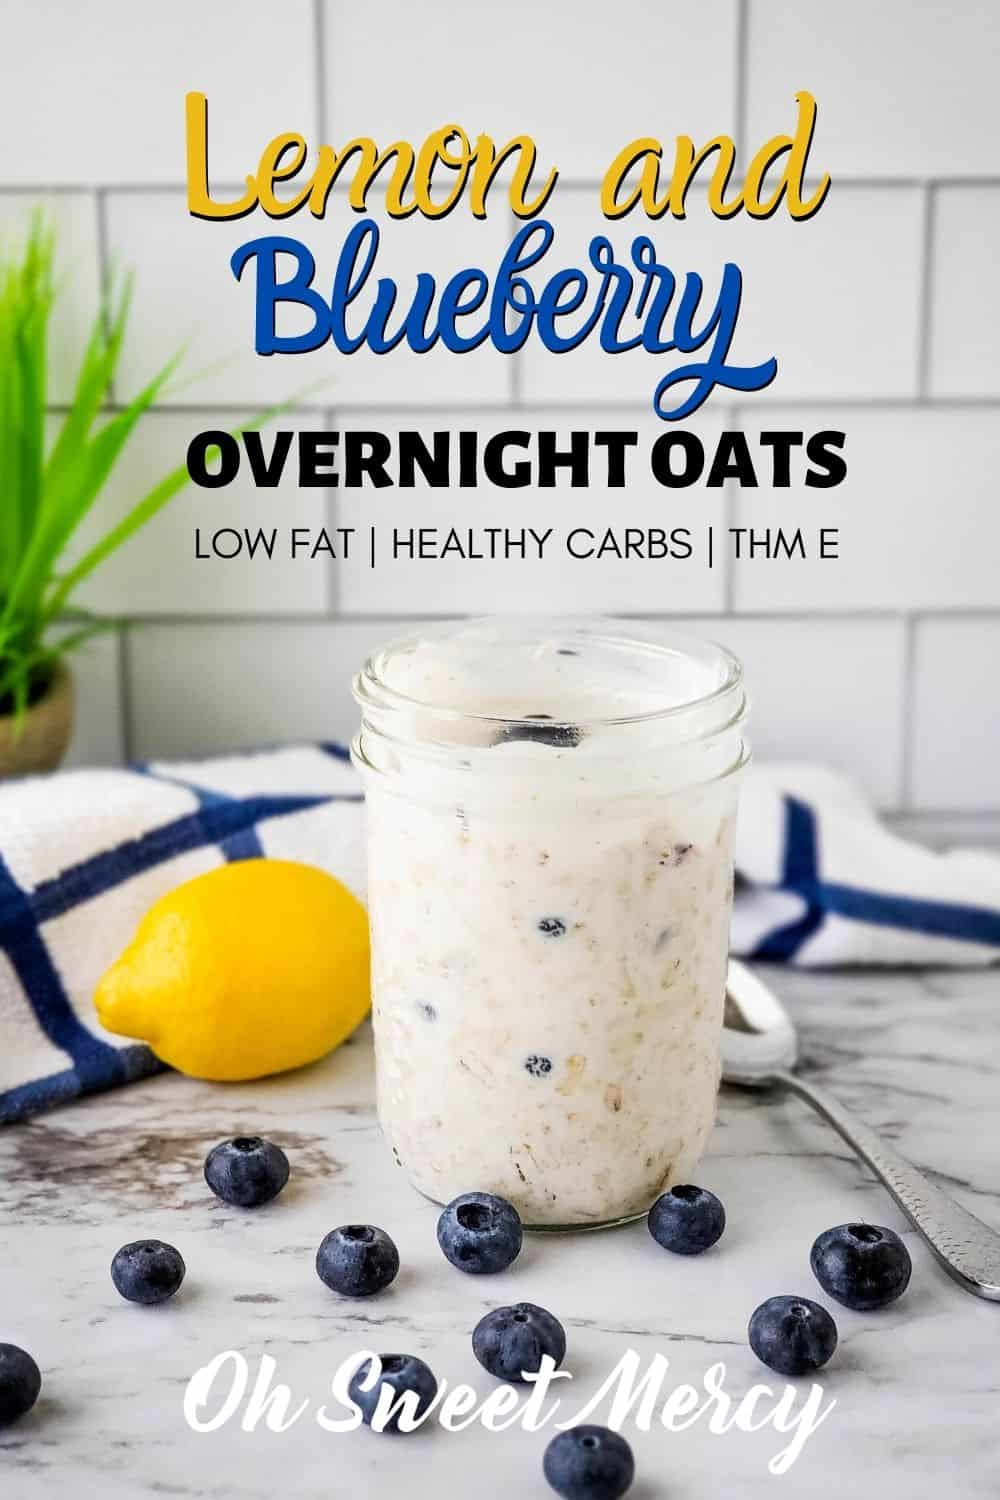 Bright, fresh, and summery these Lemon and Blueberry Overnight Oats make a refreshing cold breakfast or snack on hot summer days. Prep ahead to have them on hand! A low fat, healthy carb THM E recipe. #thm #lowfat #healthycarbs #overnightoats #masonjaroatmeal #overnightoatmeal @ohsweetmercy